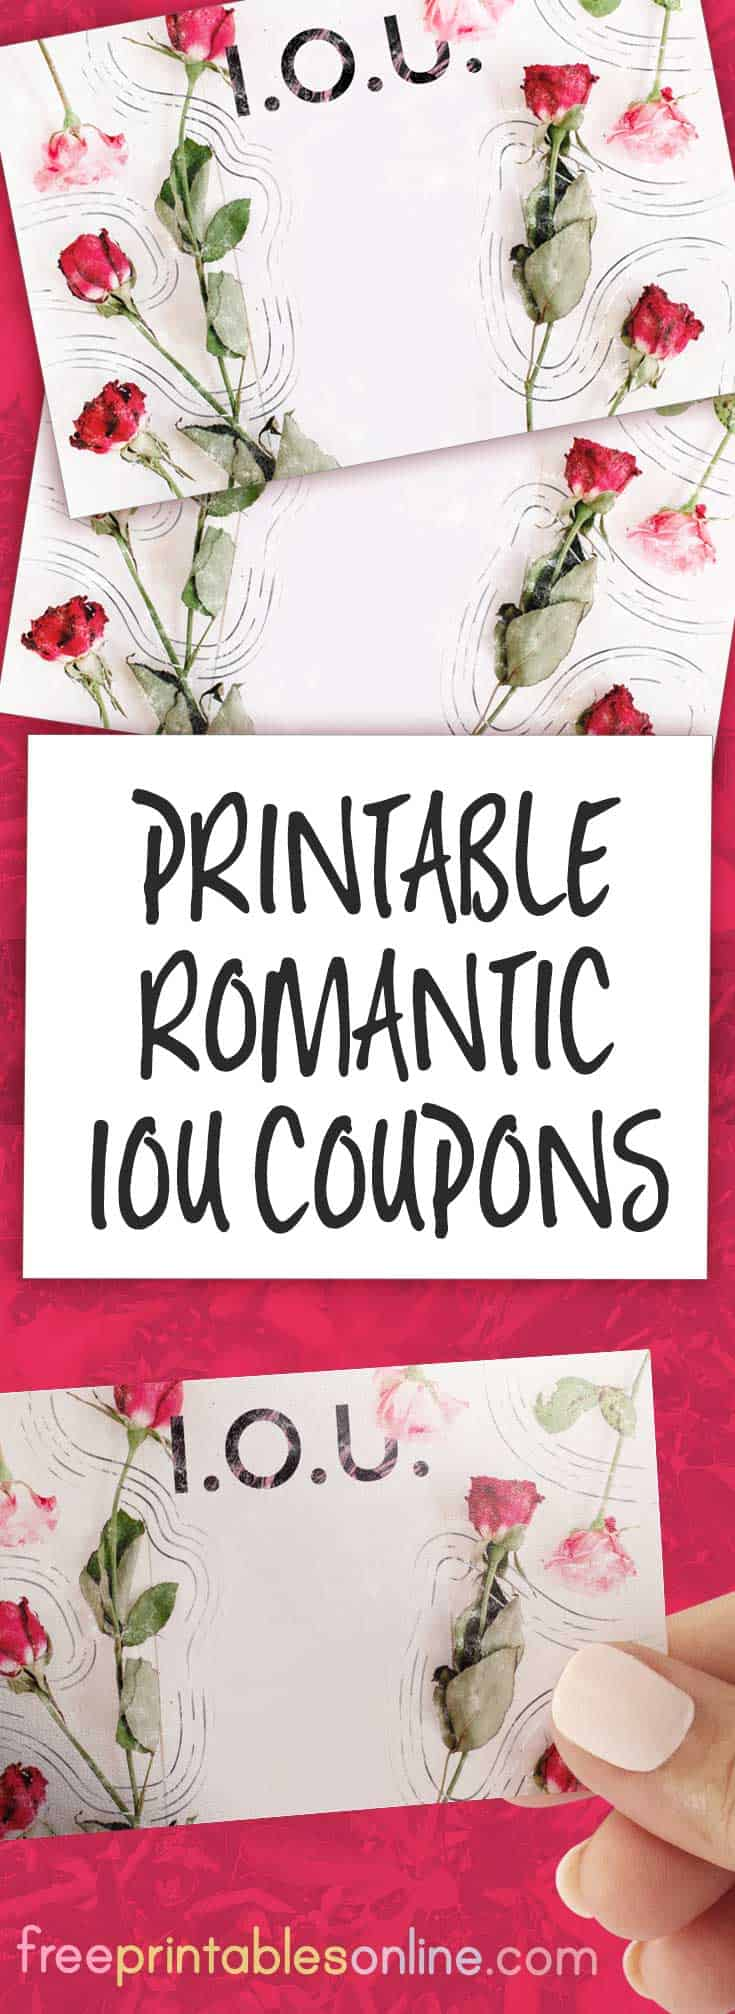 romantic iou coupon with roses free printables online. Black Bedroom Furniture Sets. Home Design Ideas